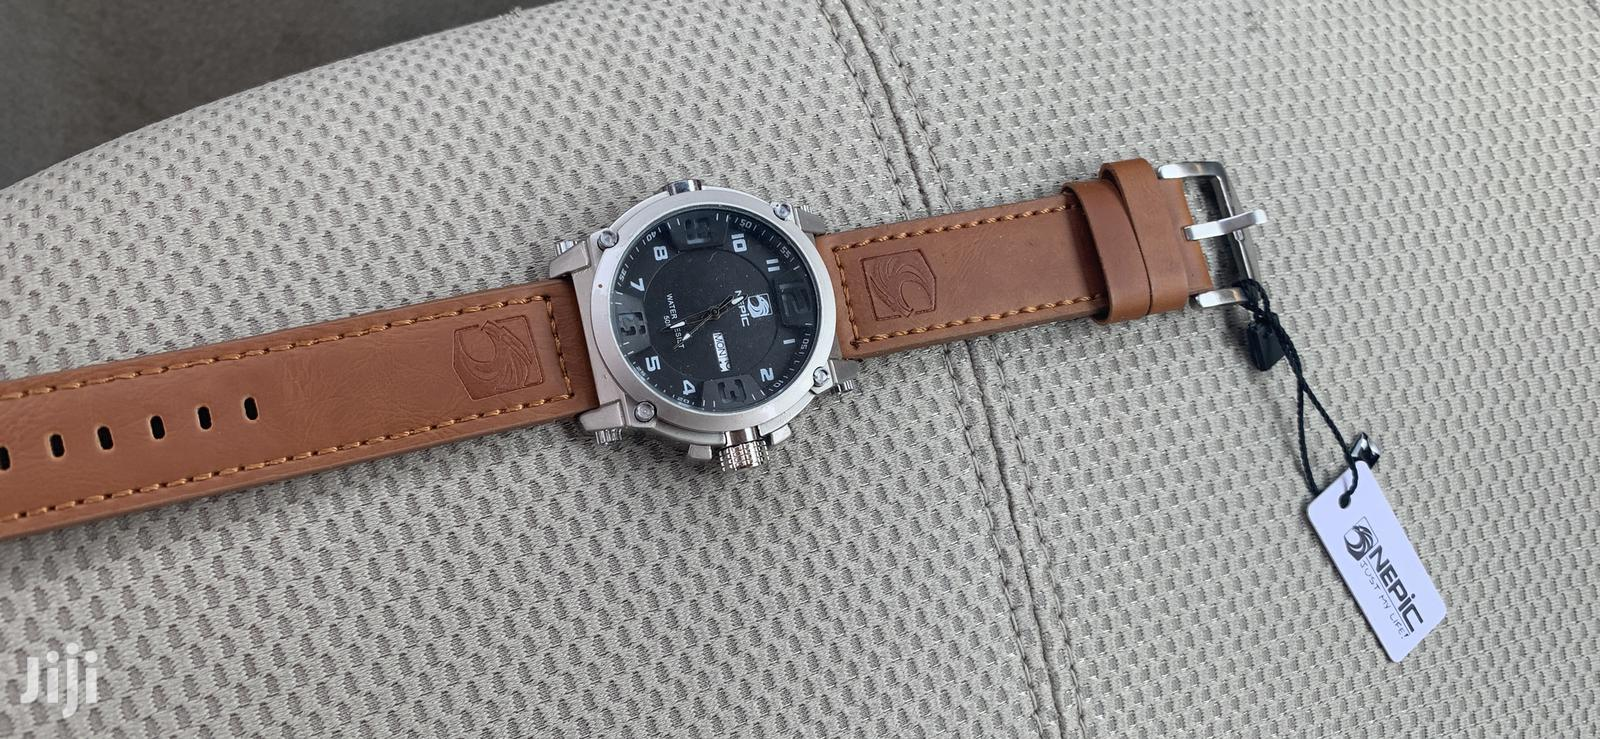 Brand New Watch-Brown | Watches for sale in Airport Residential Area, Greater Accra, Ghana